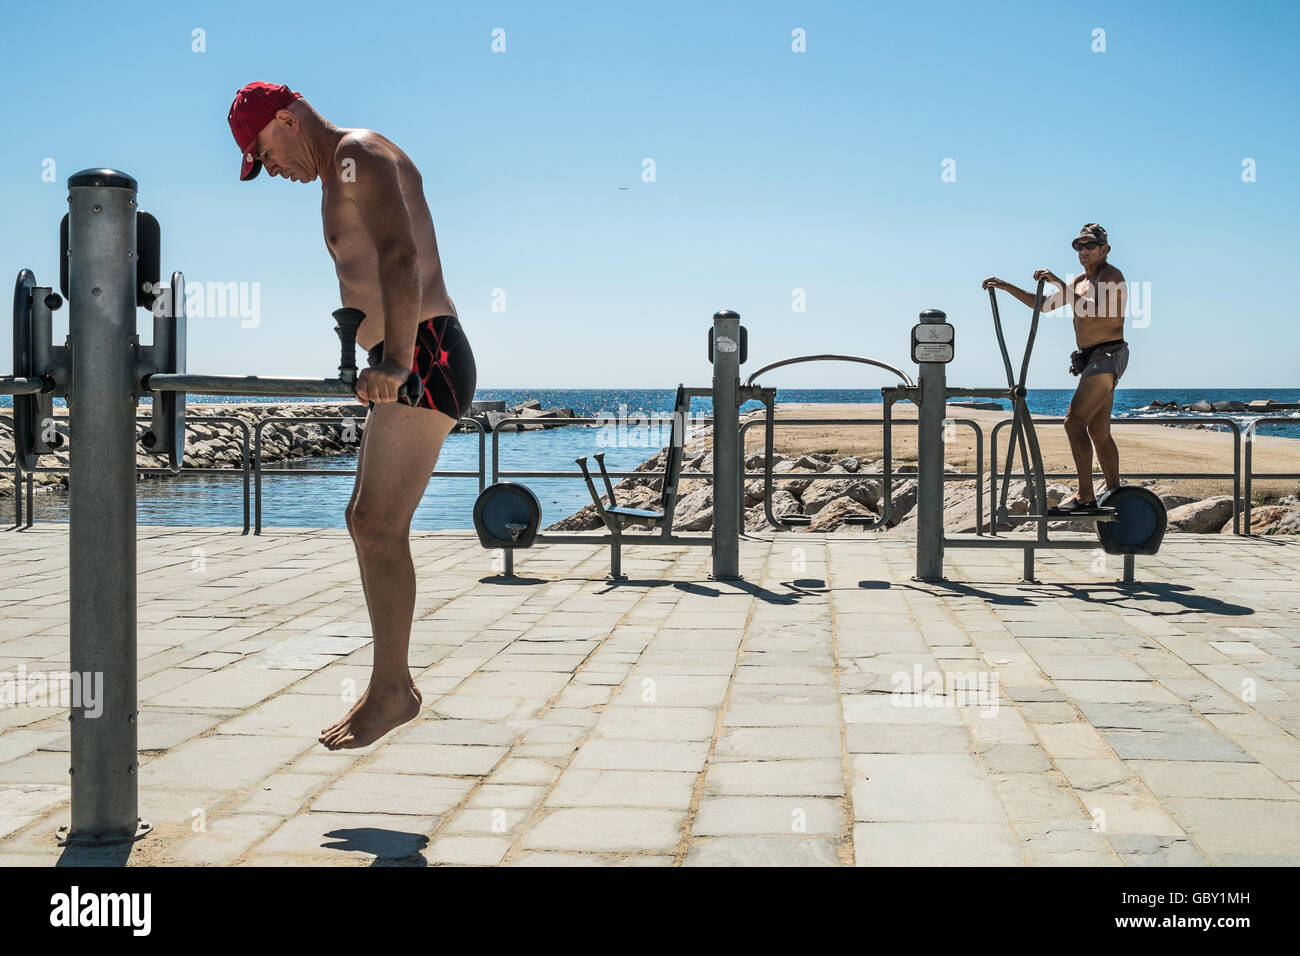 Two elderly men working out at the seaside in Barcelona, Spain. Stock Photo